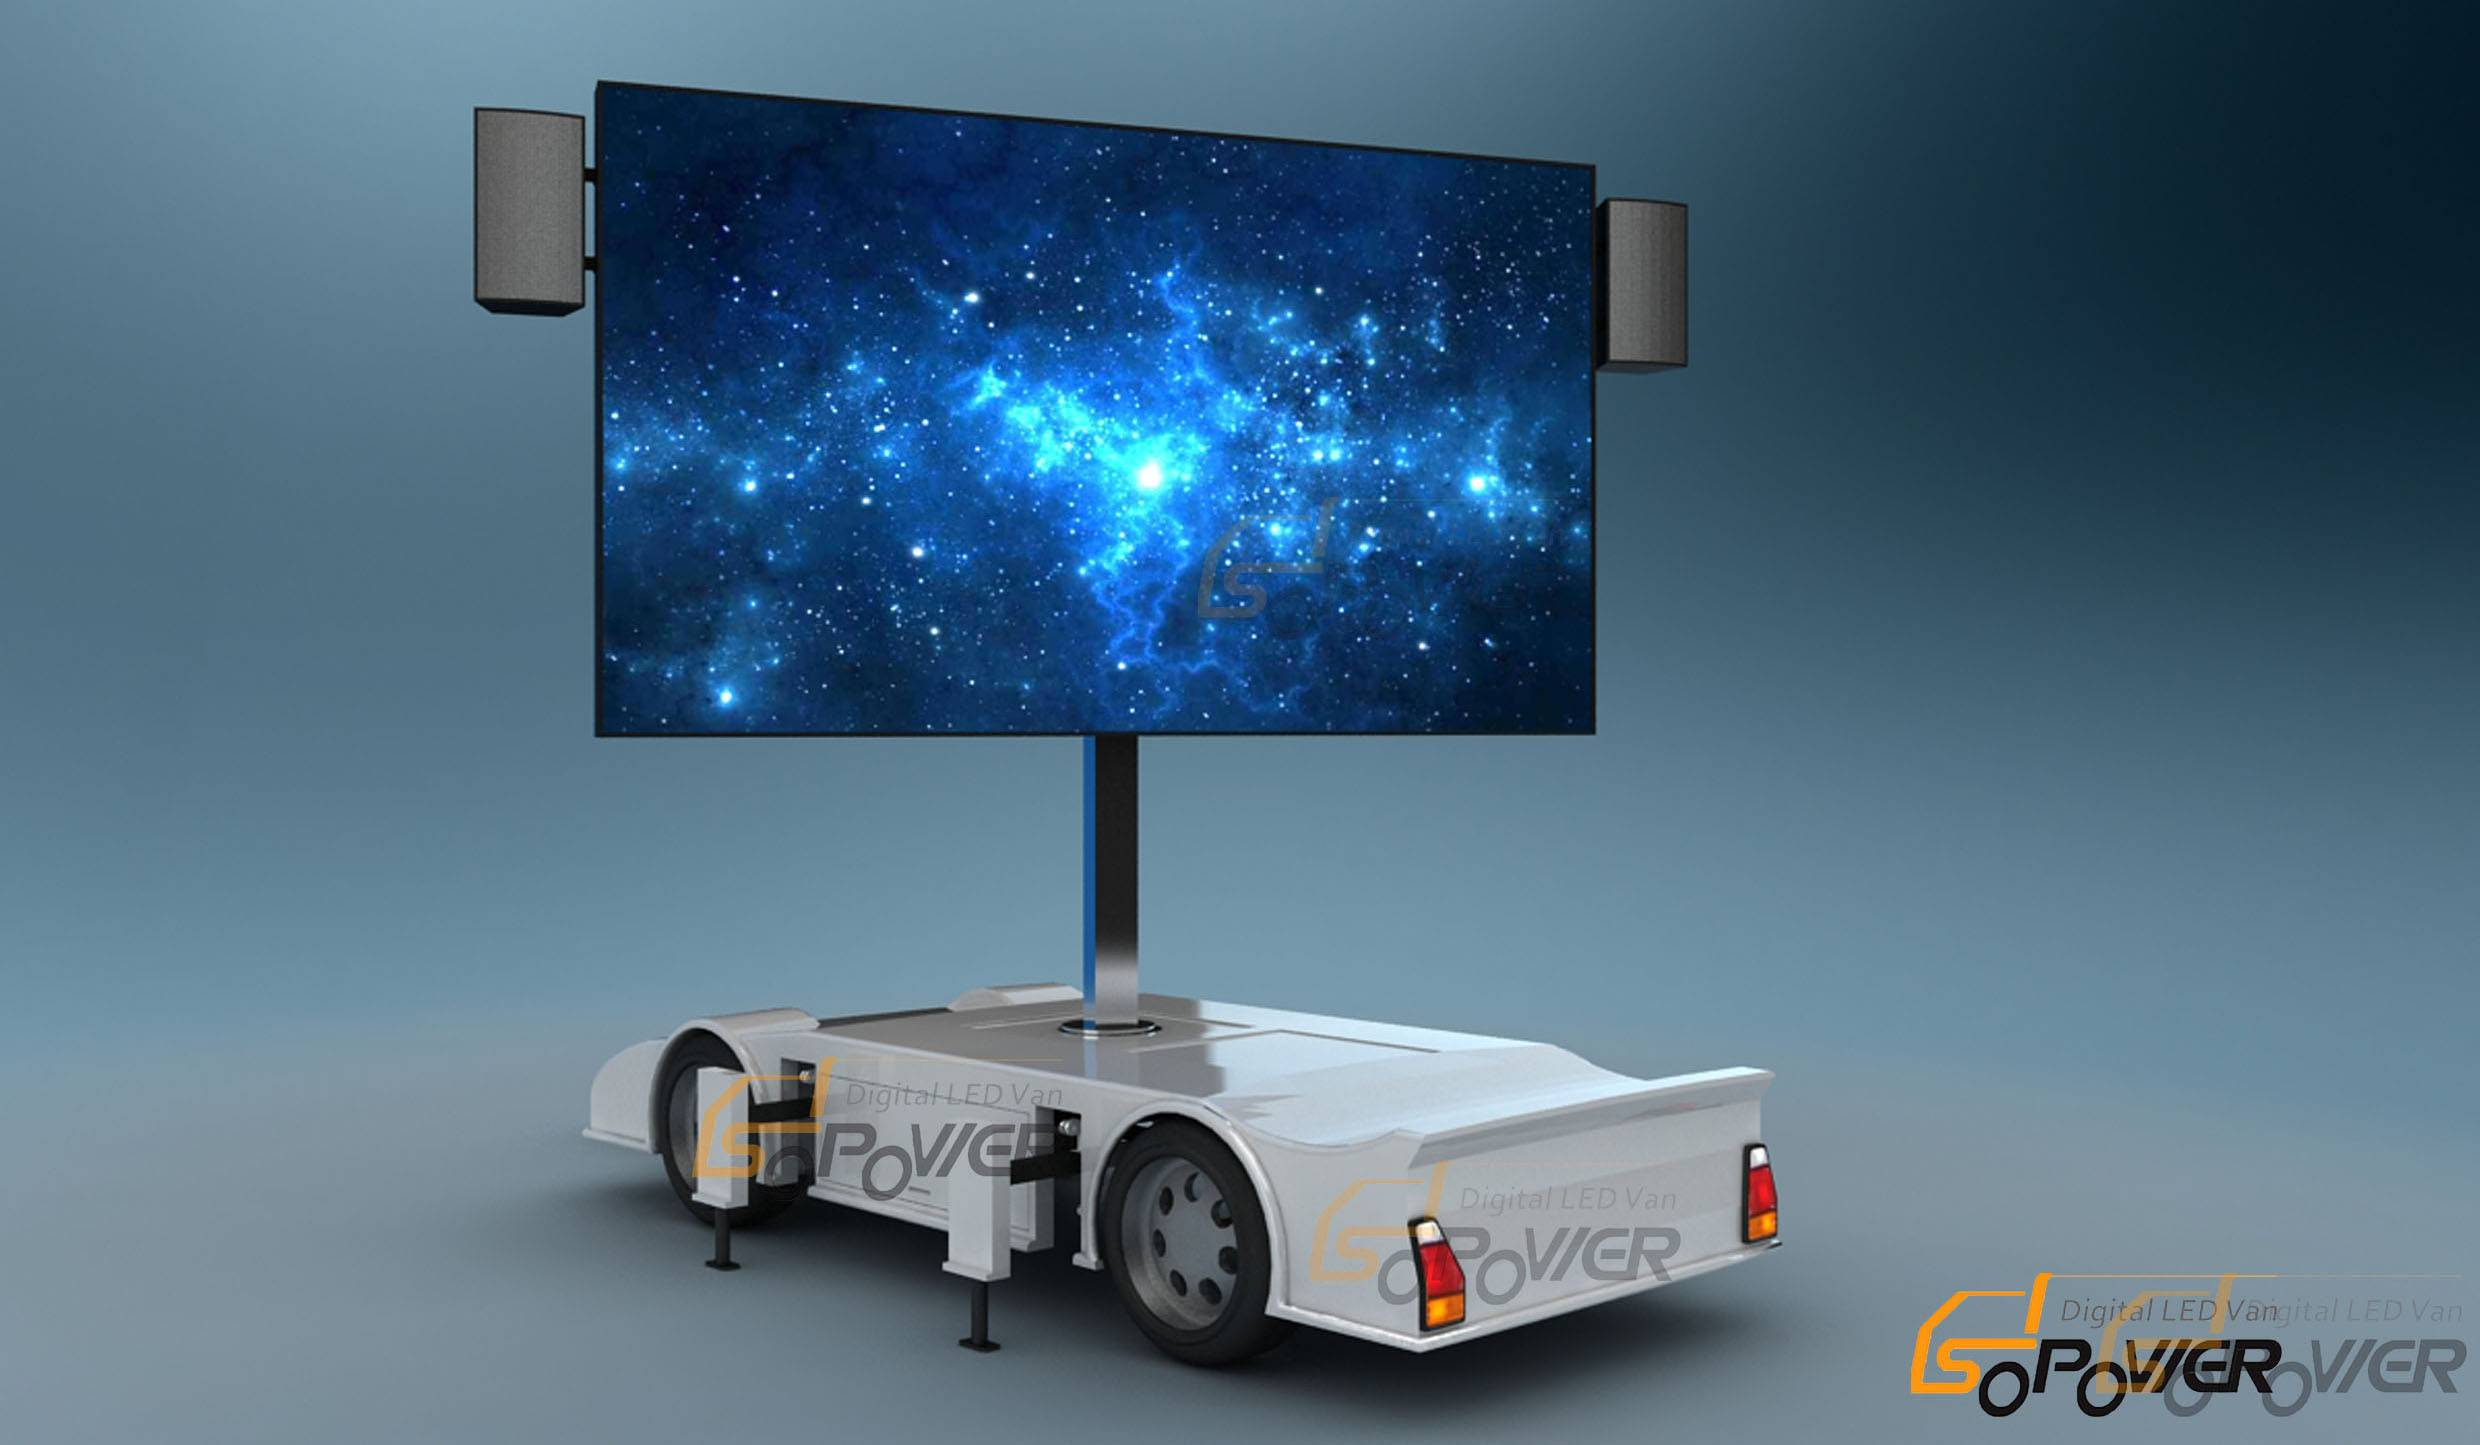 SoPower Digital LED Trailer iTrailer 9